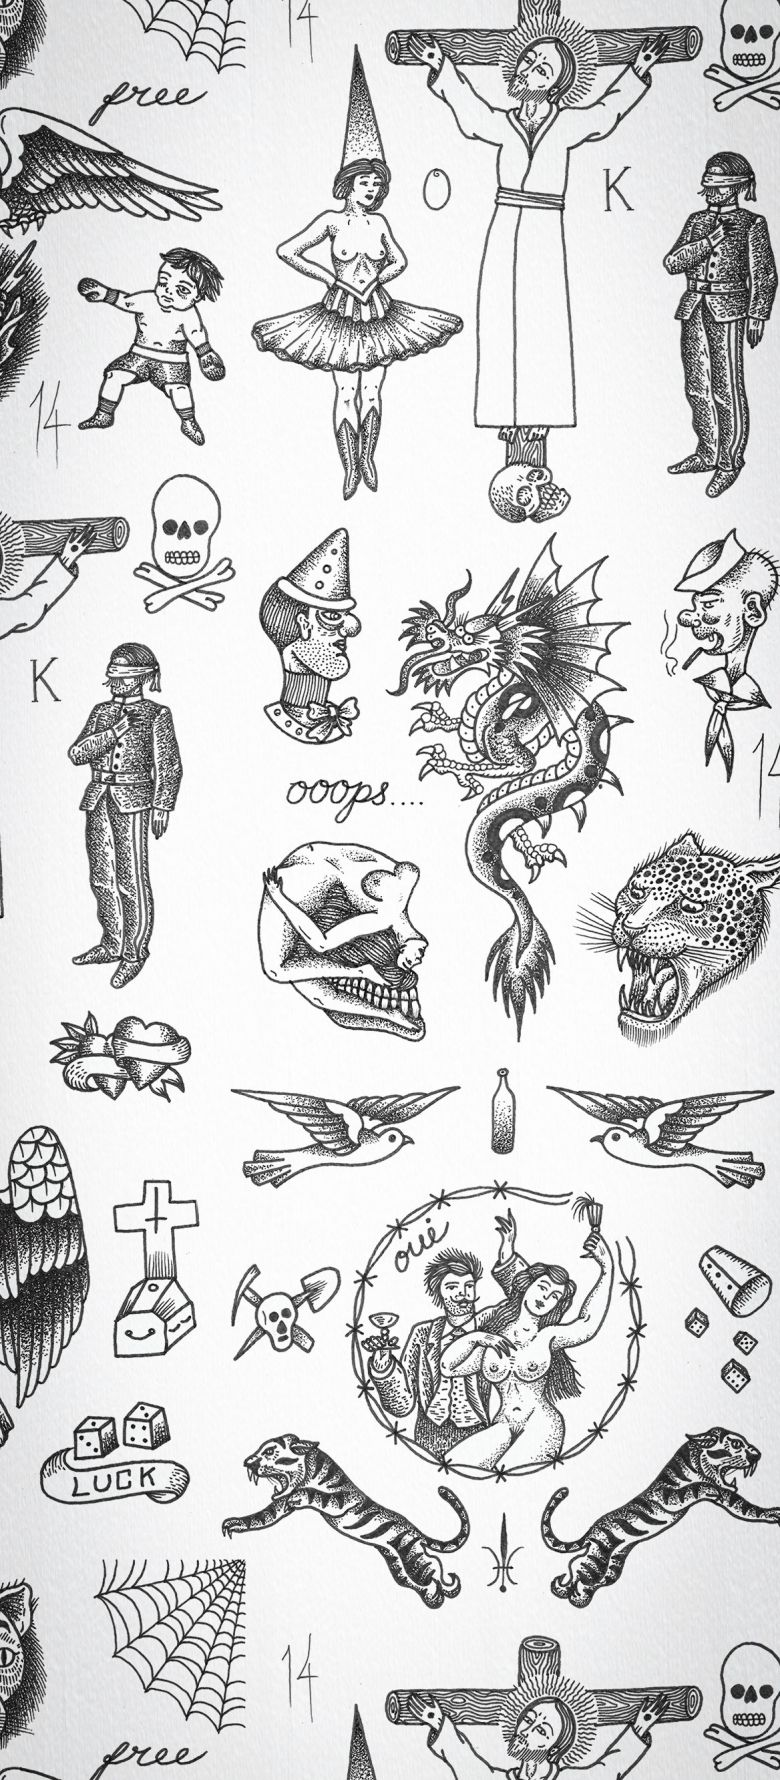 Tattoo Flash 01 Wallpaper By Liam Sparkes Feathr Tattoos For Women Small Meaningful Arm Tattoos For Guys Traditional Tattoo Traditional tattoo flash wallpaper